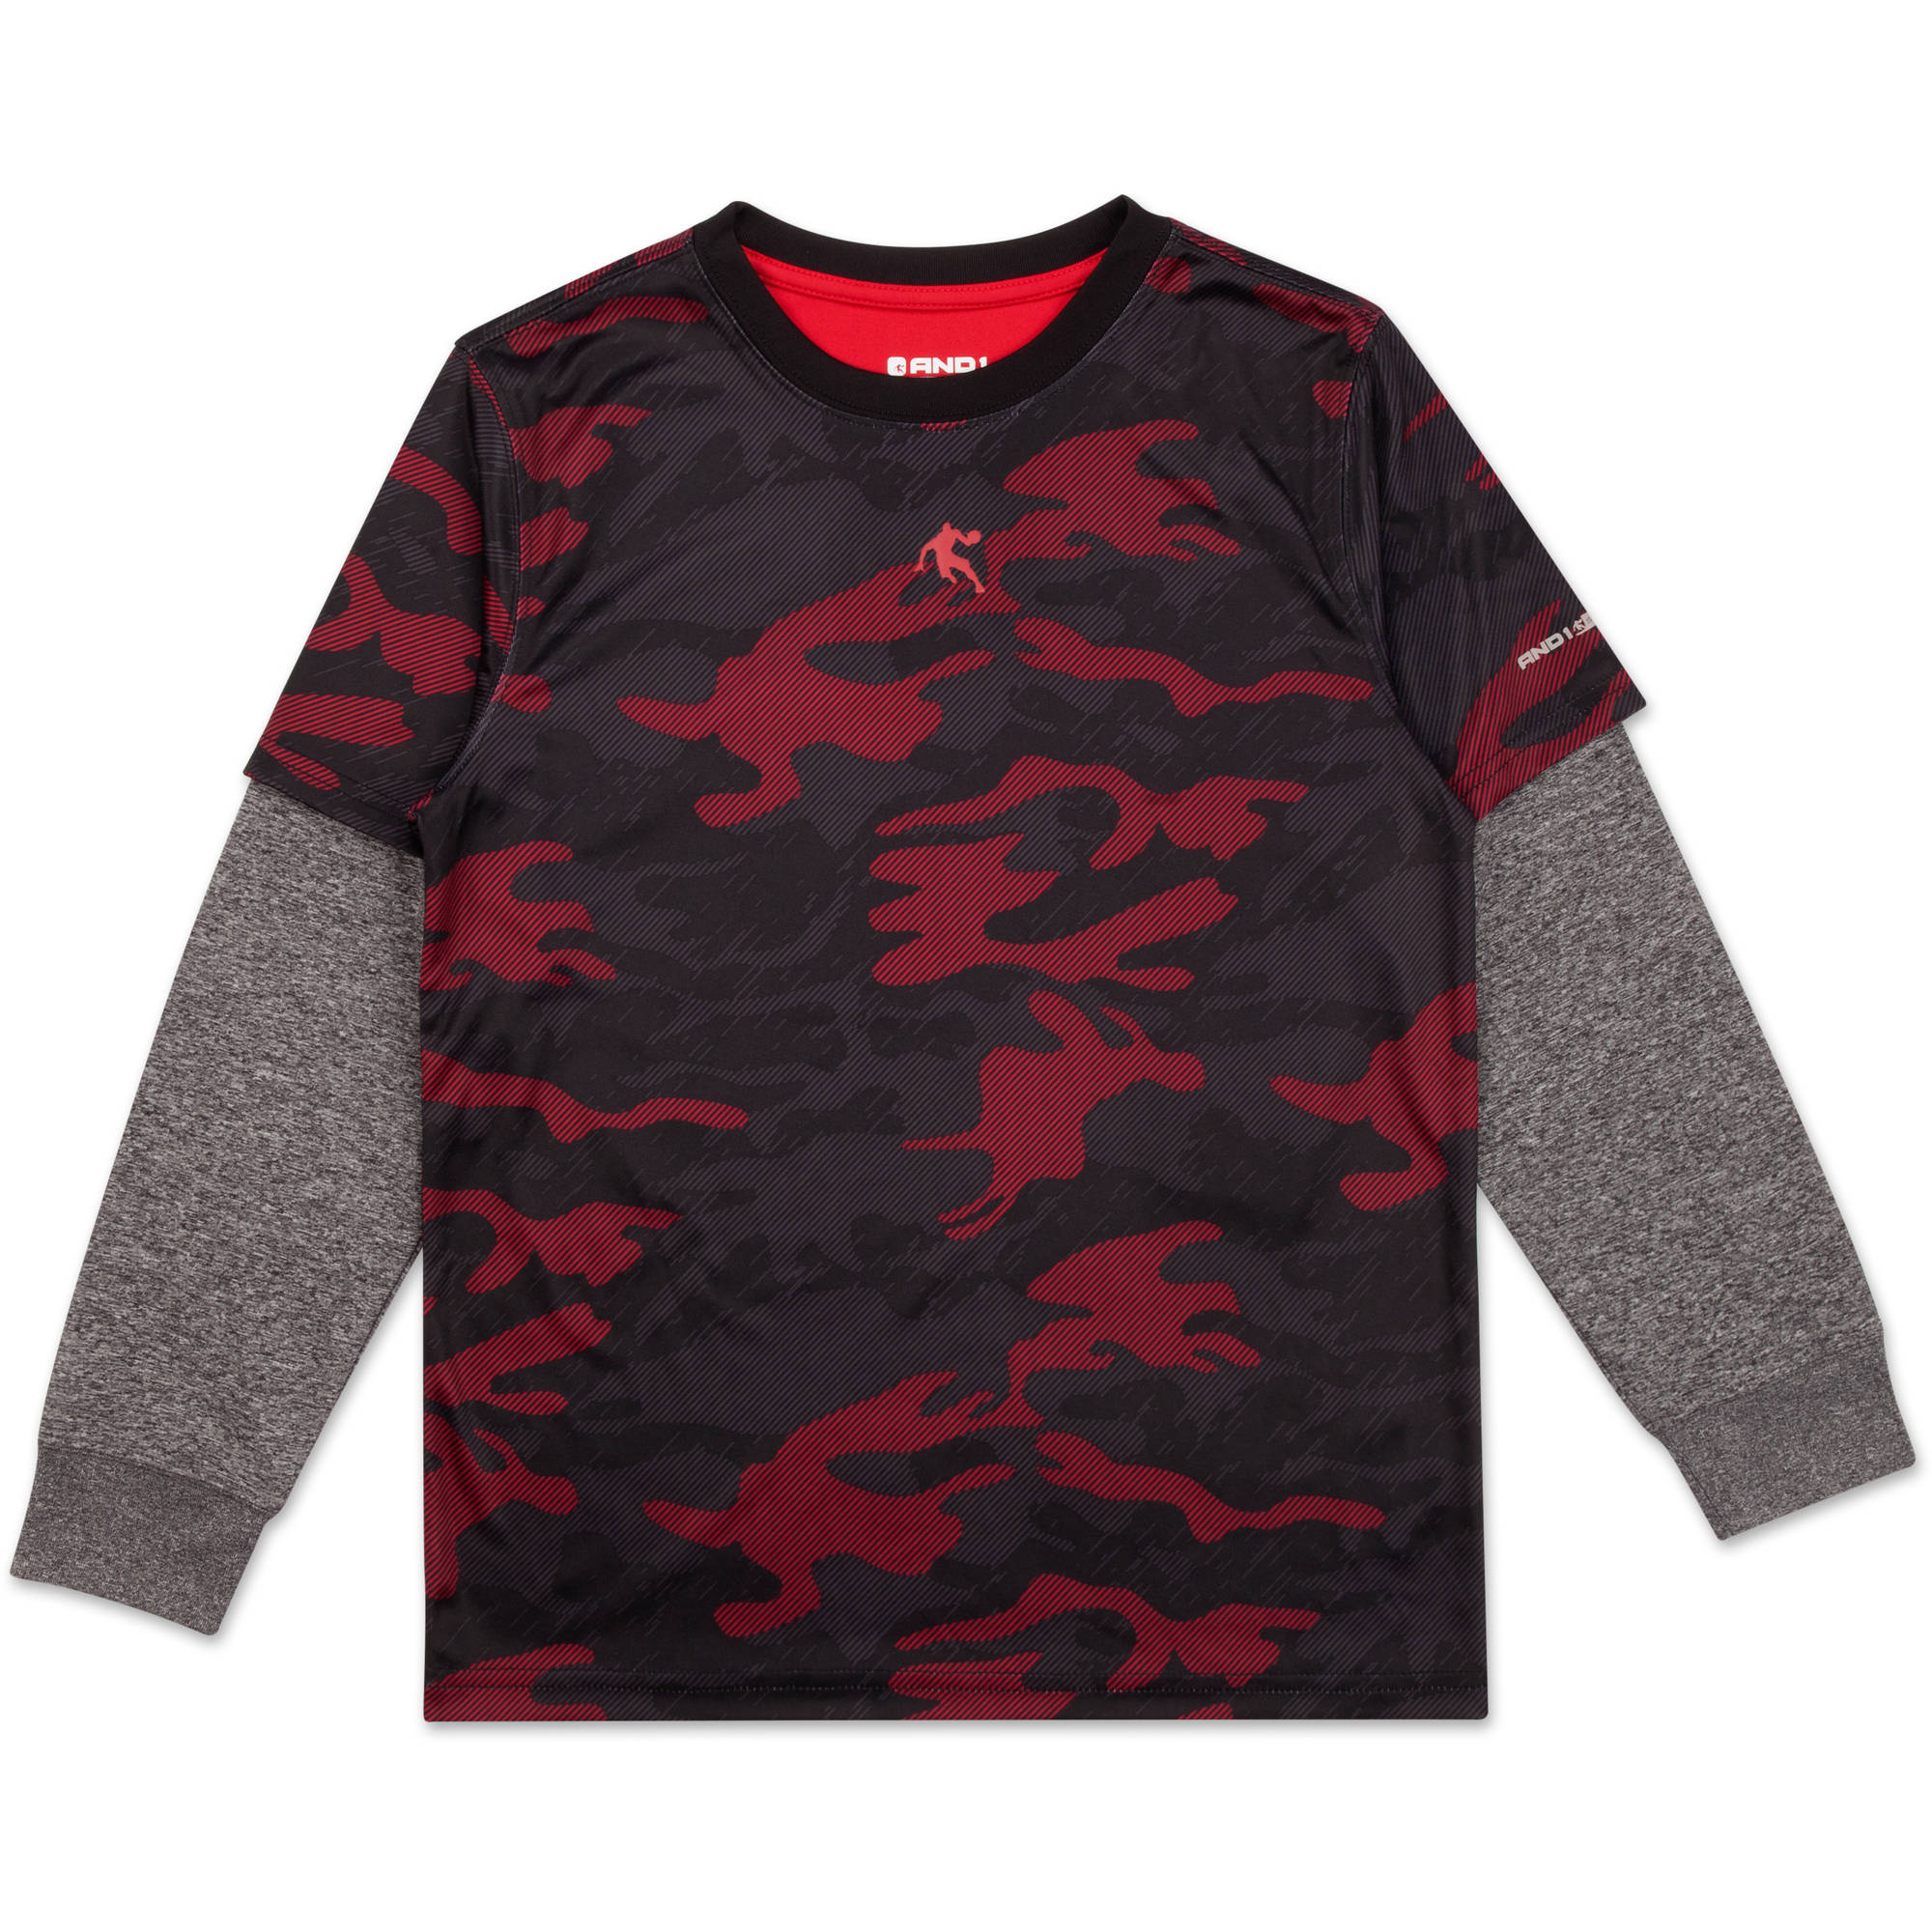 AND1 Boys Player Long Sleeve Top